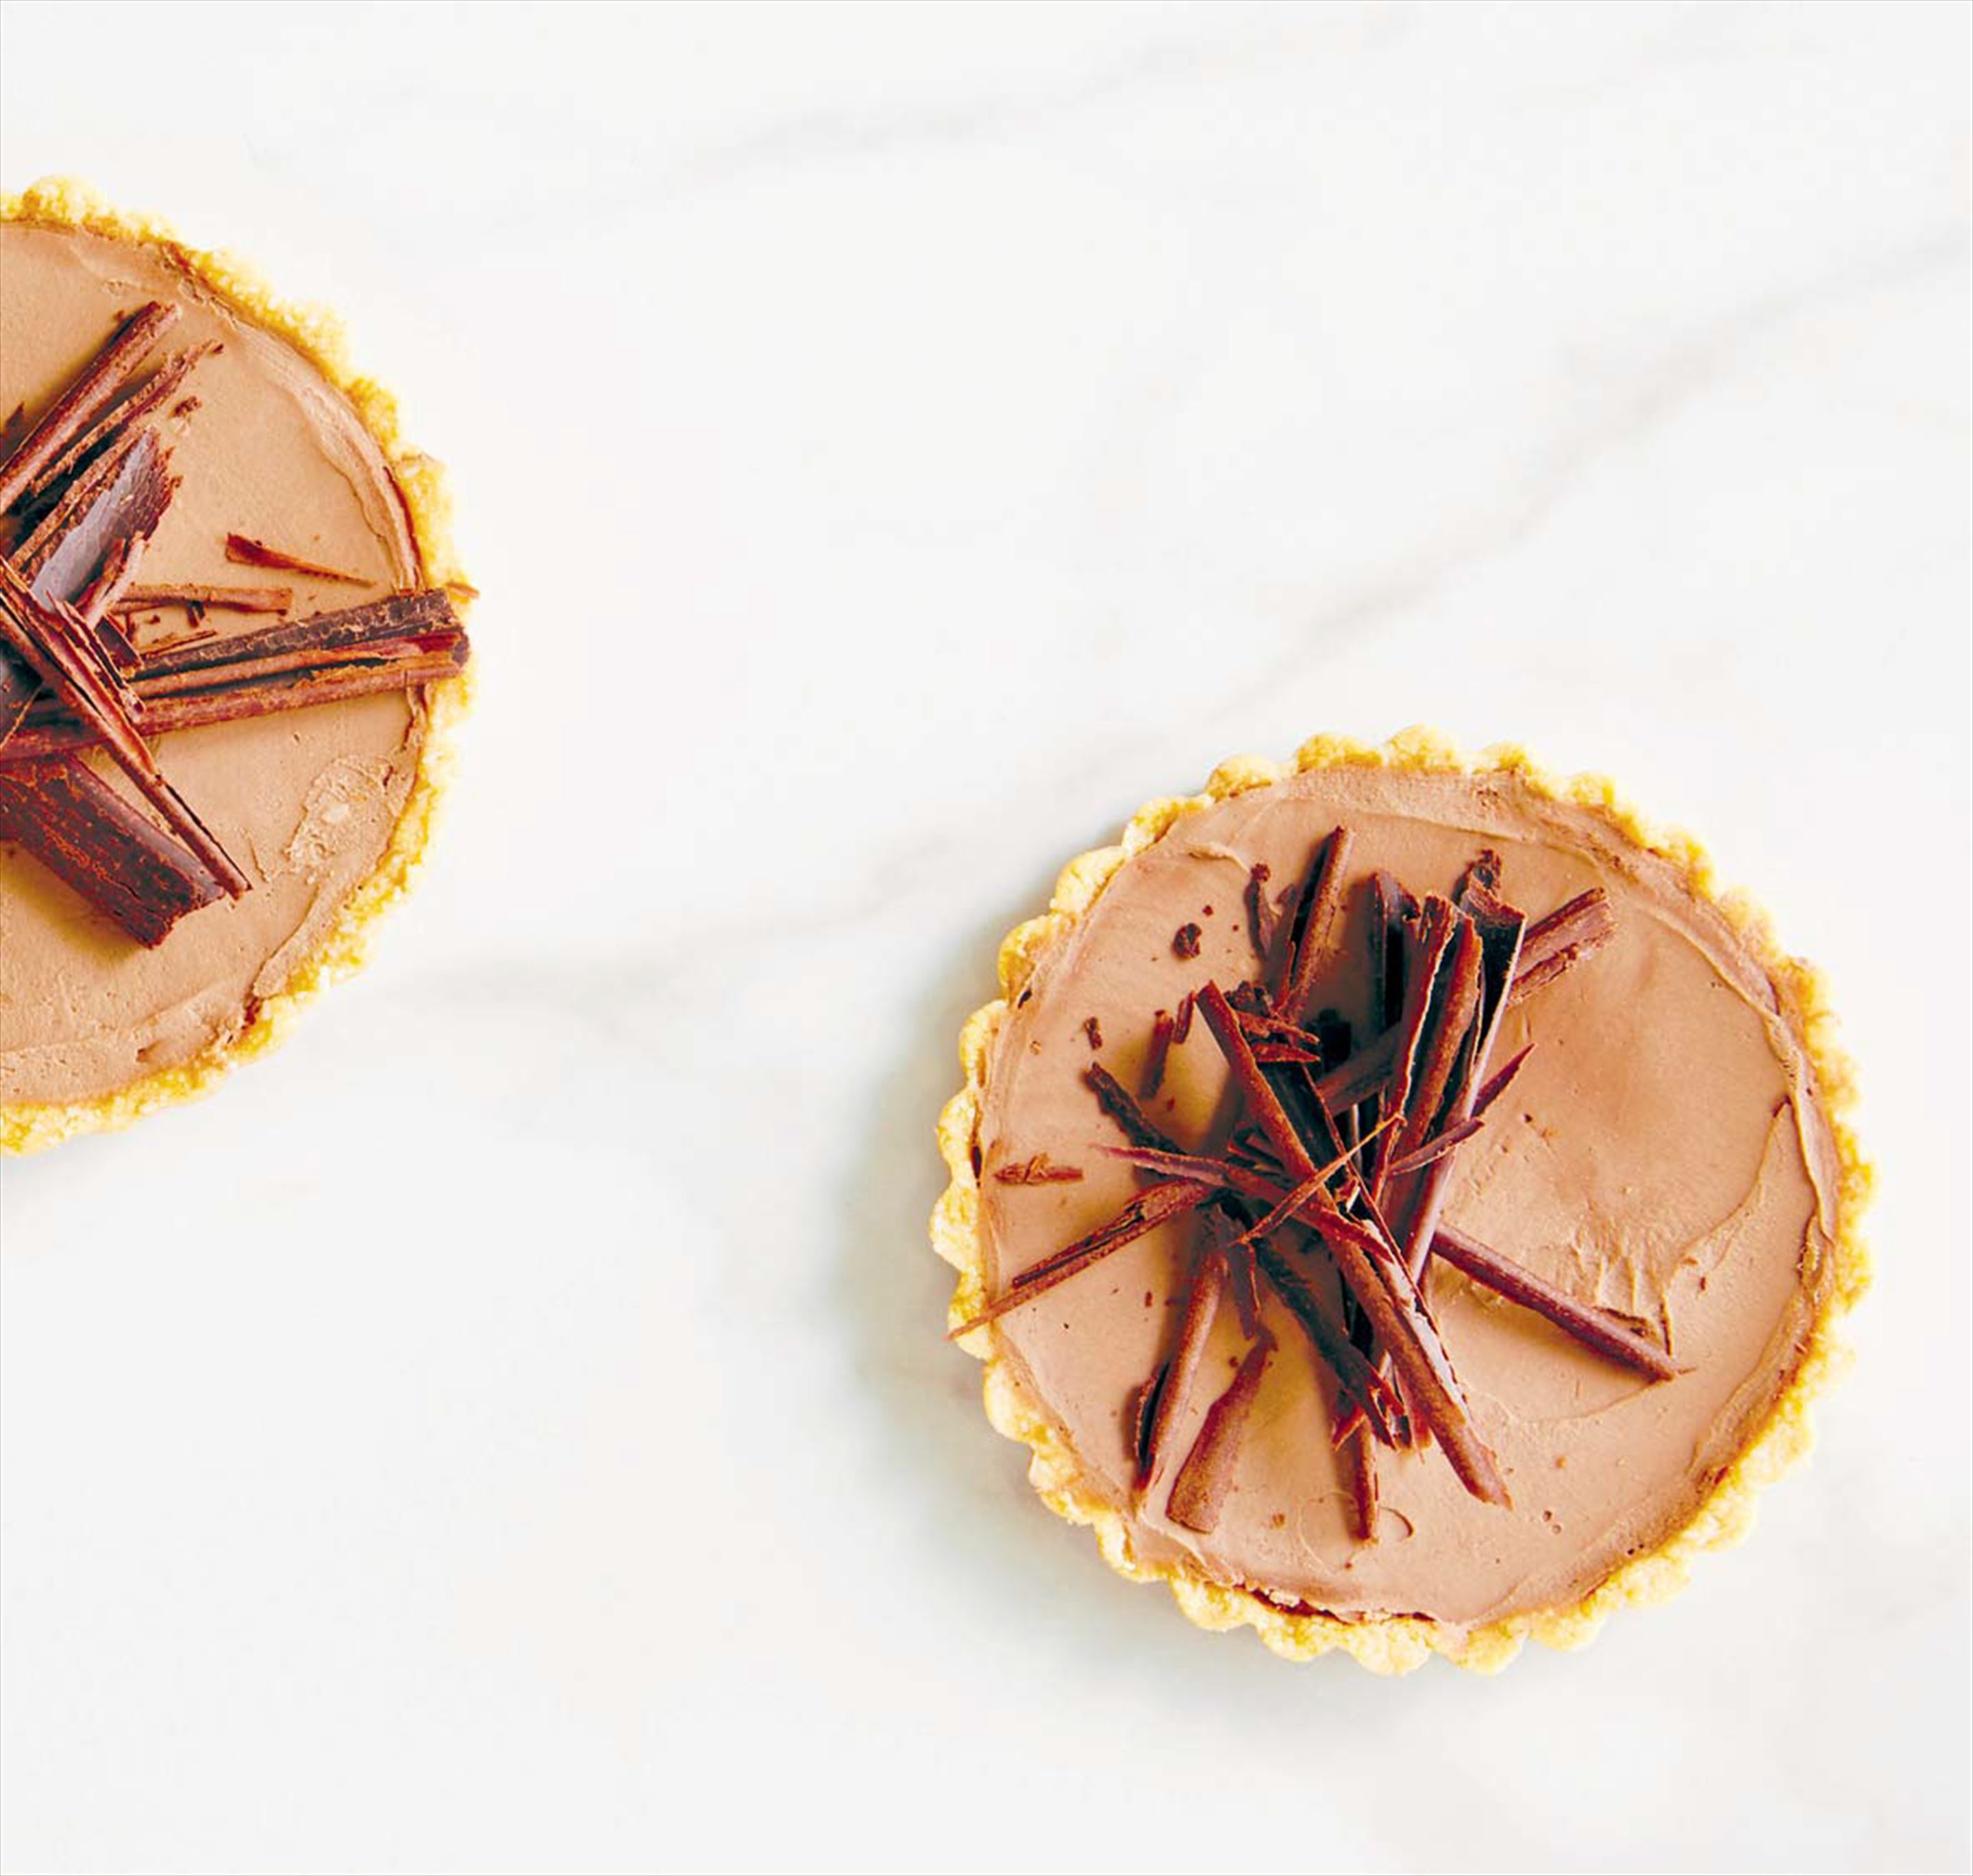 Chocolate queen of tarts